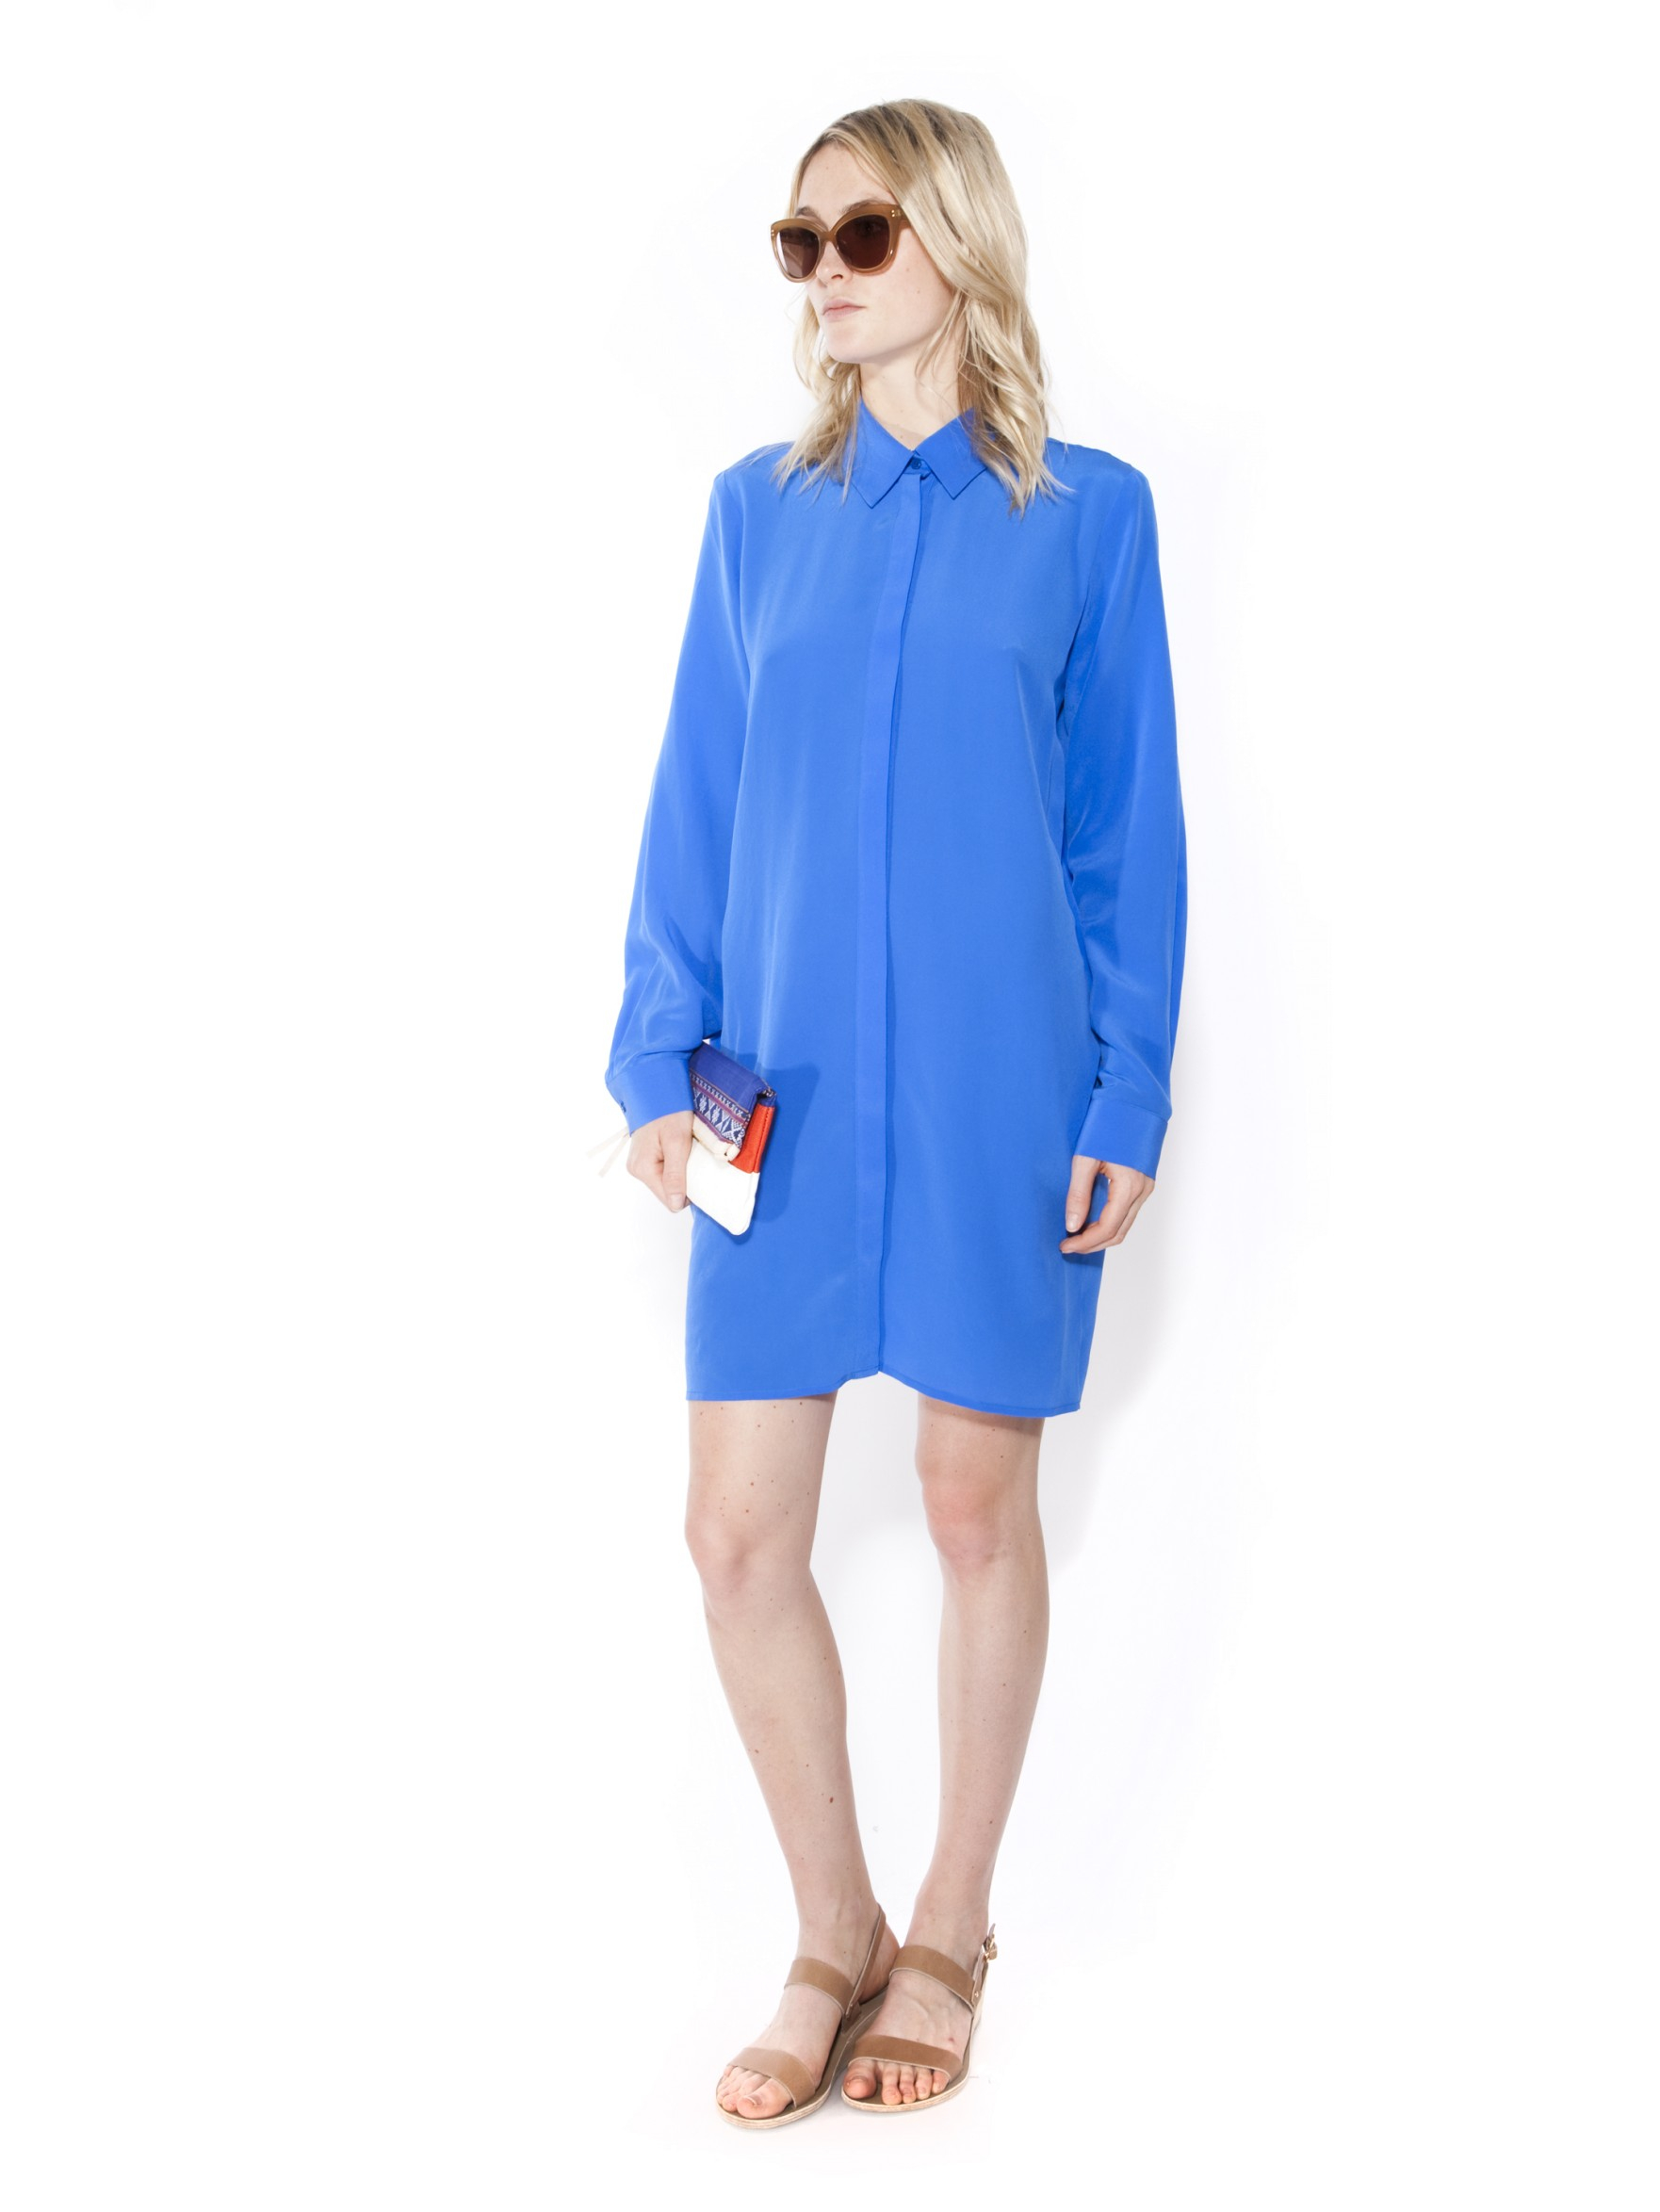 Otte new york shirt dress in blue marine lyst for New york and company dress shirts